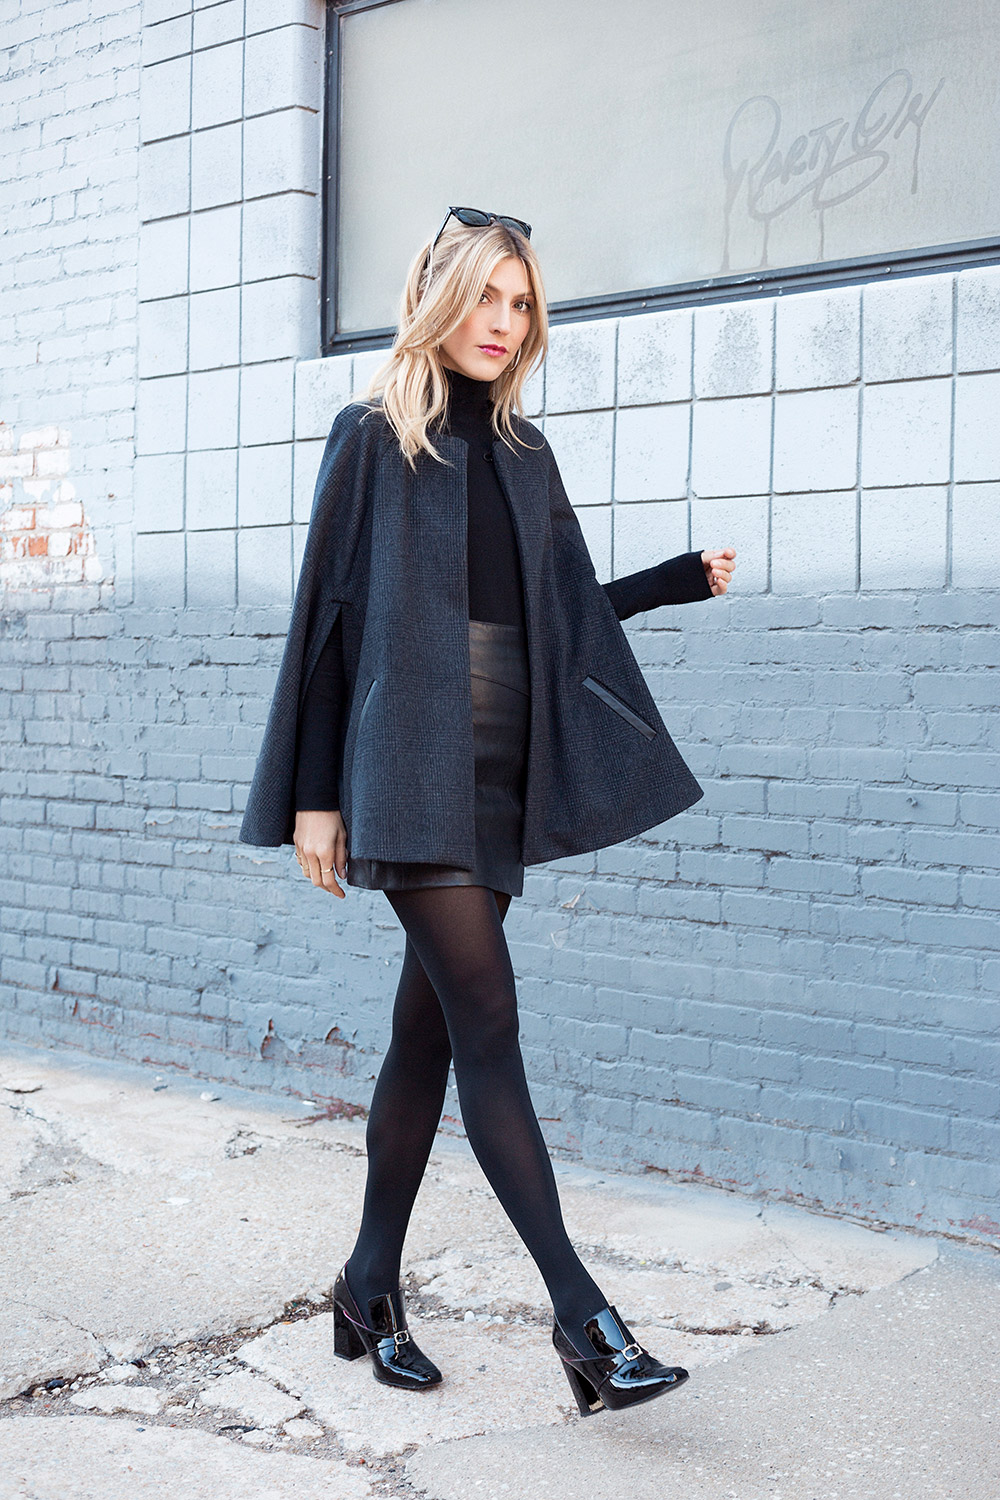 Cape Jacket in Charcoal Plaid Wool with Leather Trim by Sarah Nelsen   Photo by Samantha Levi Photography